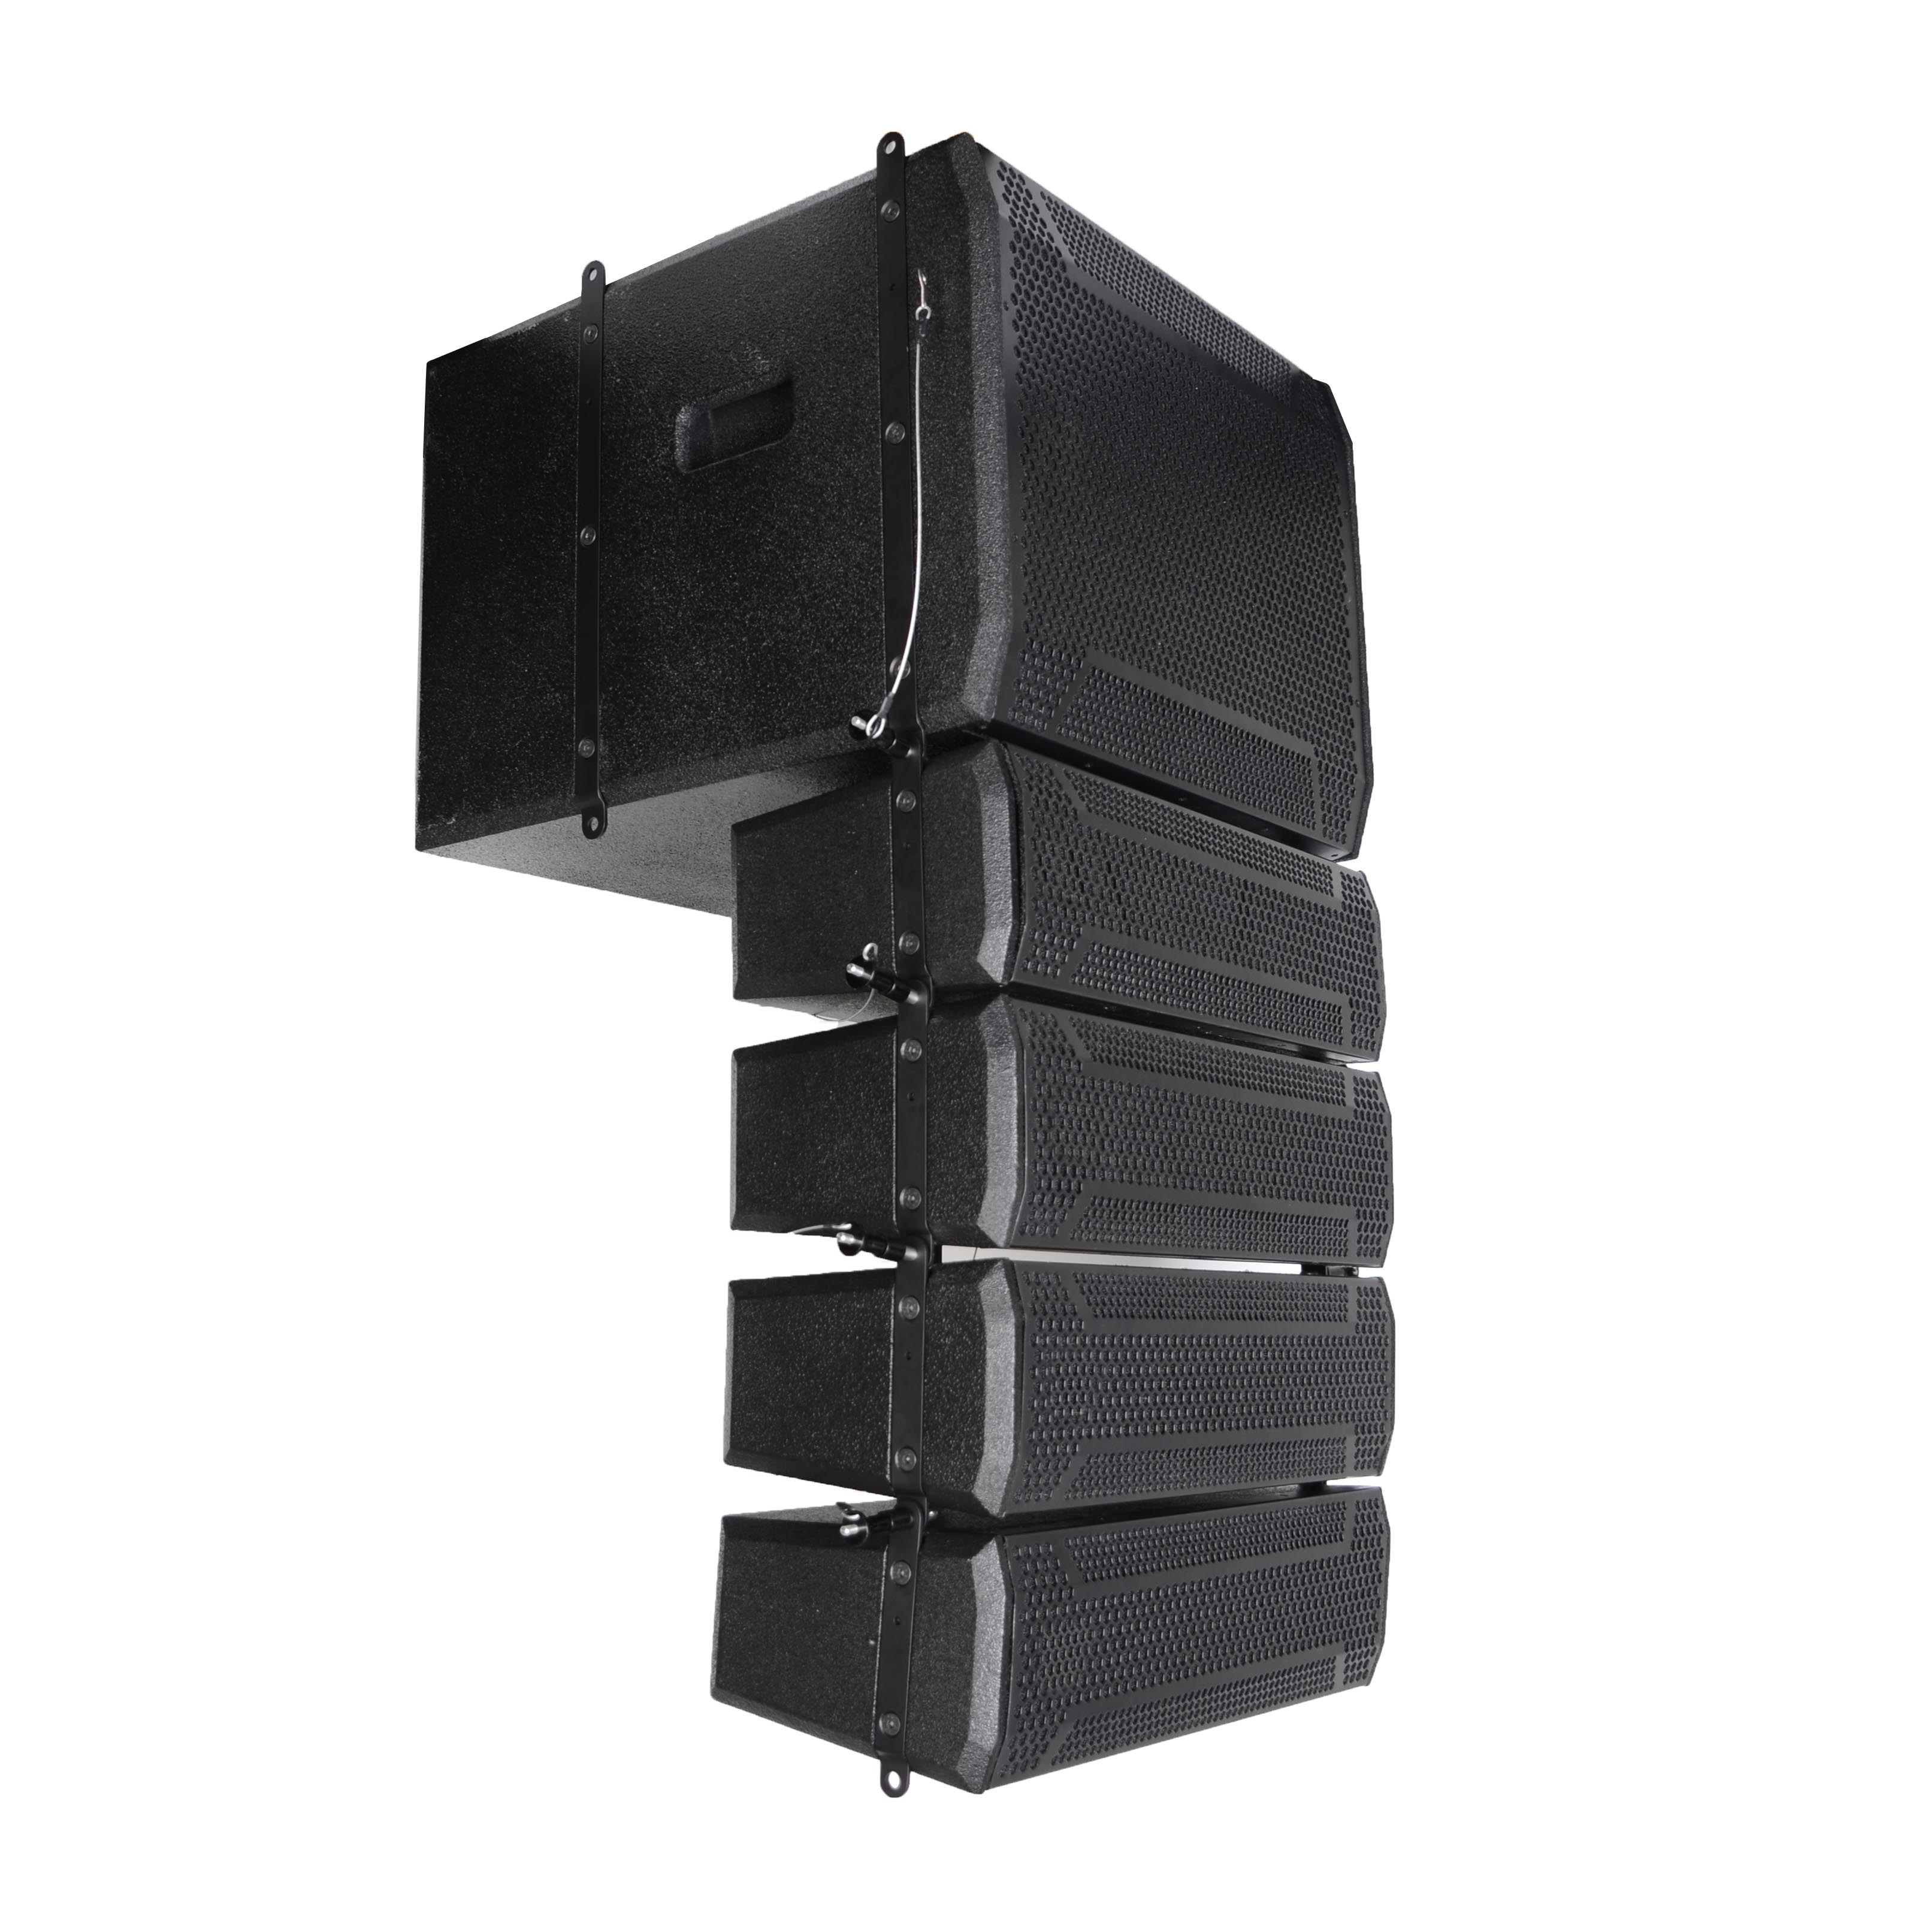 Nauwkeurigheid Pro Audio RQWI2615DSP-KIT nieuwe professionele china pa 1300 W actieve outdoor line array speaker sound system